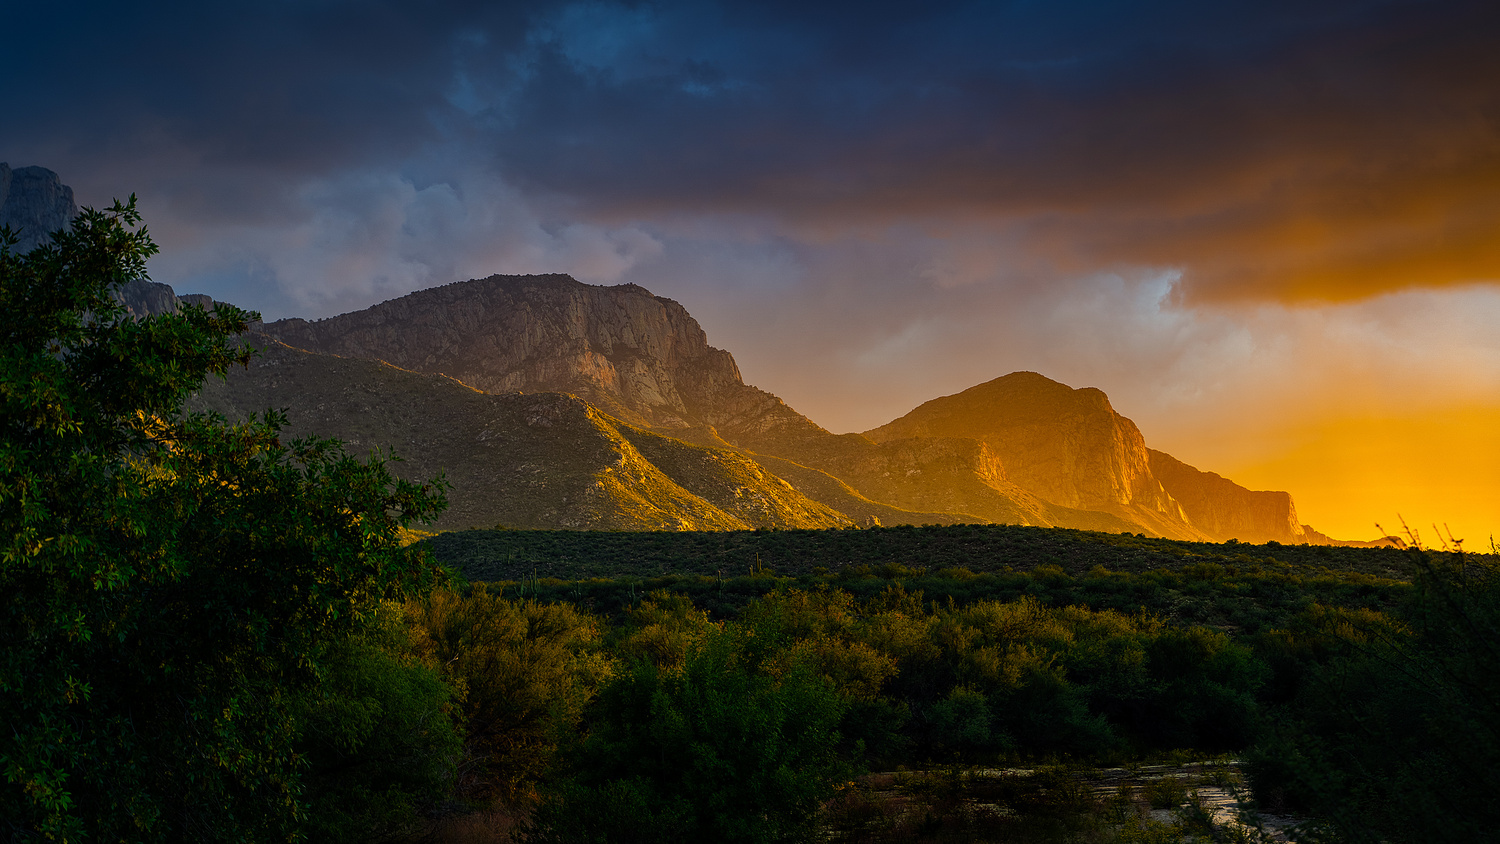 Sunset at Catalina State Park by Mel Martin